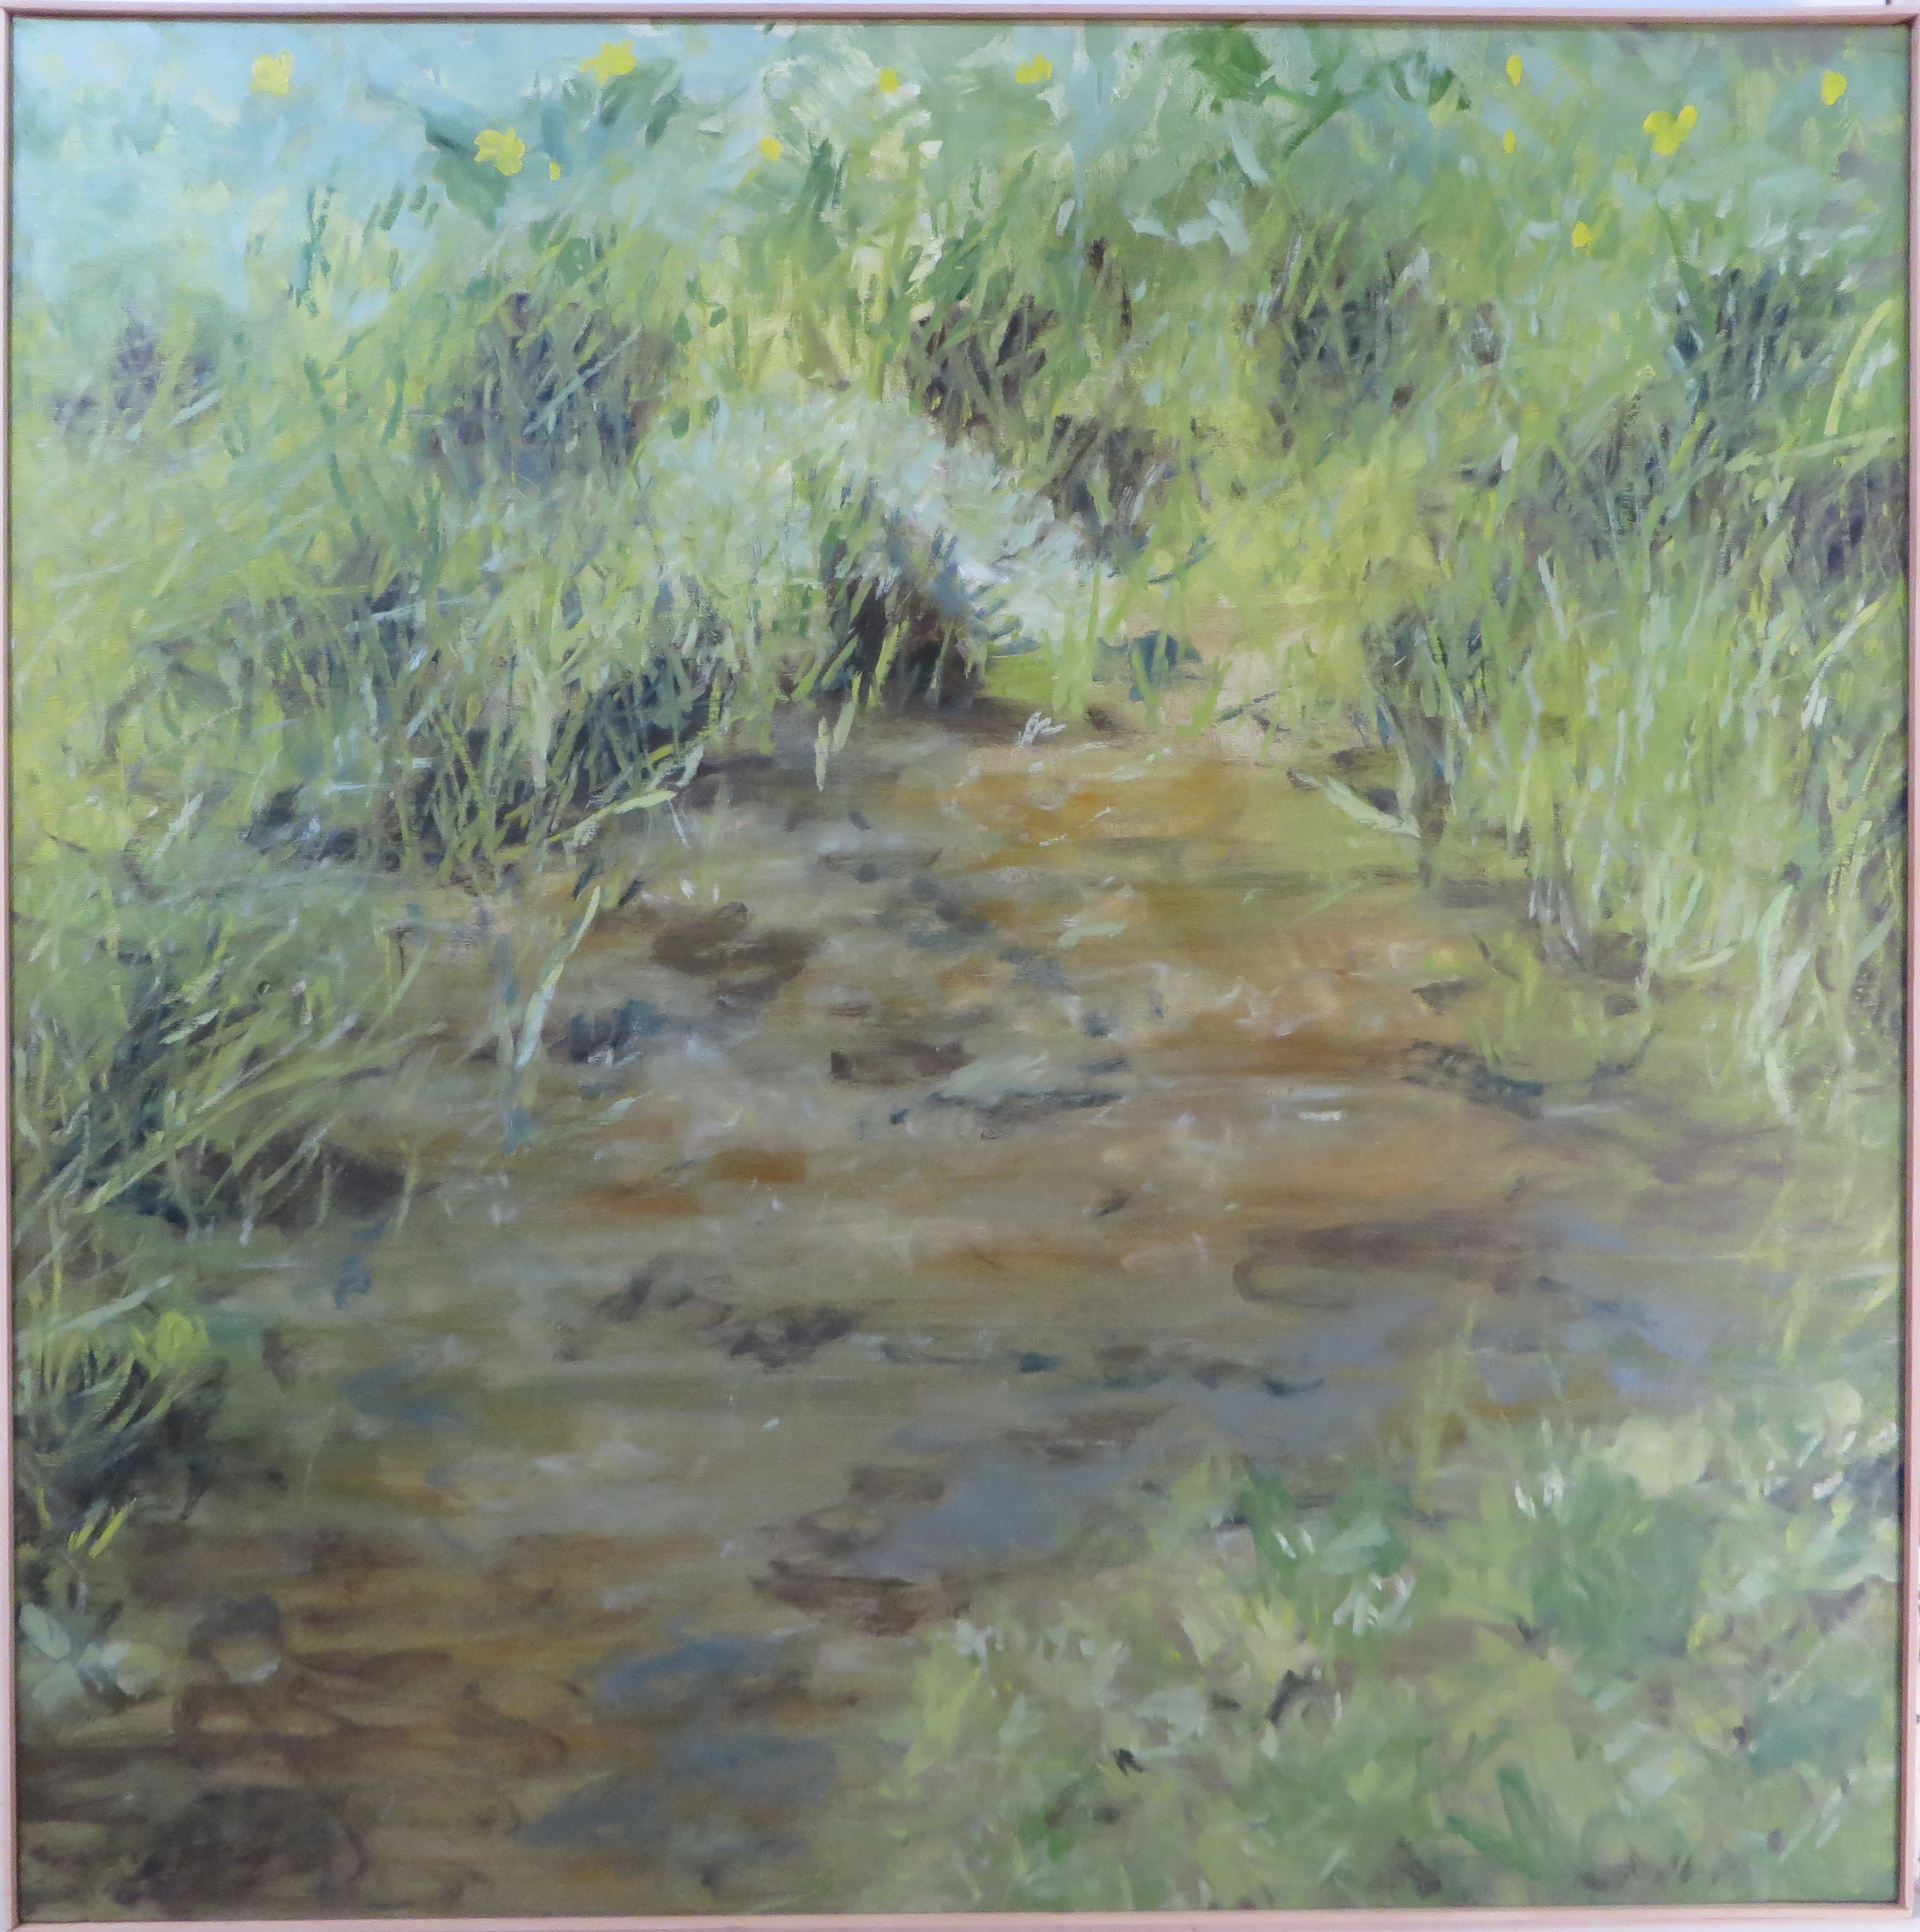 Patch of Turf, 2008